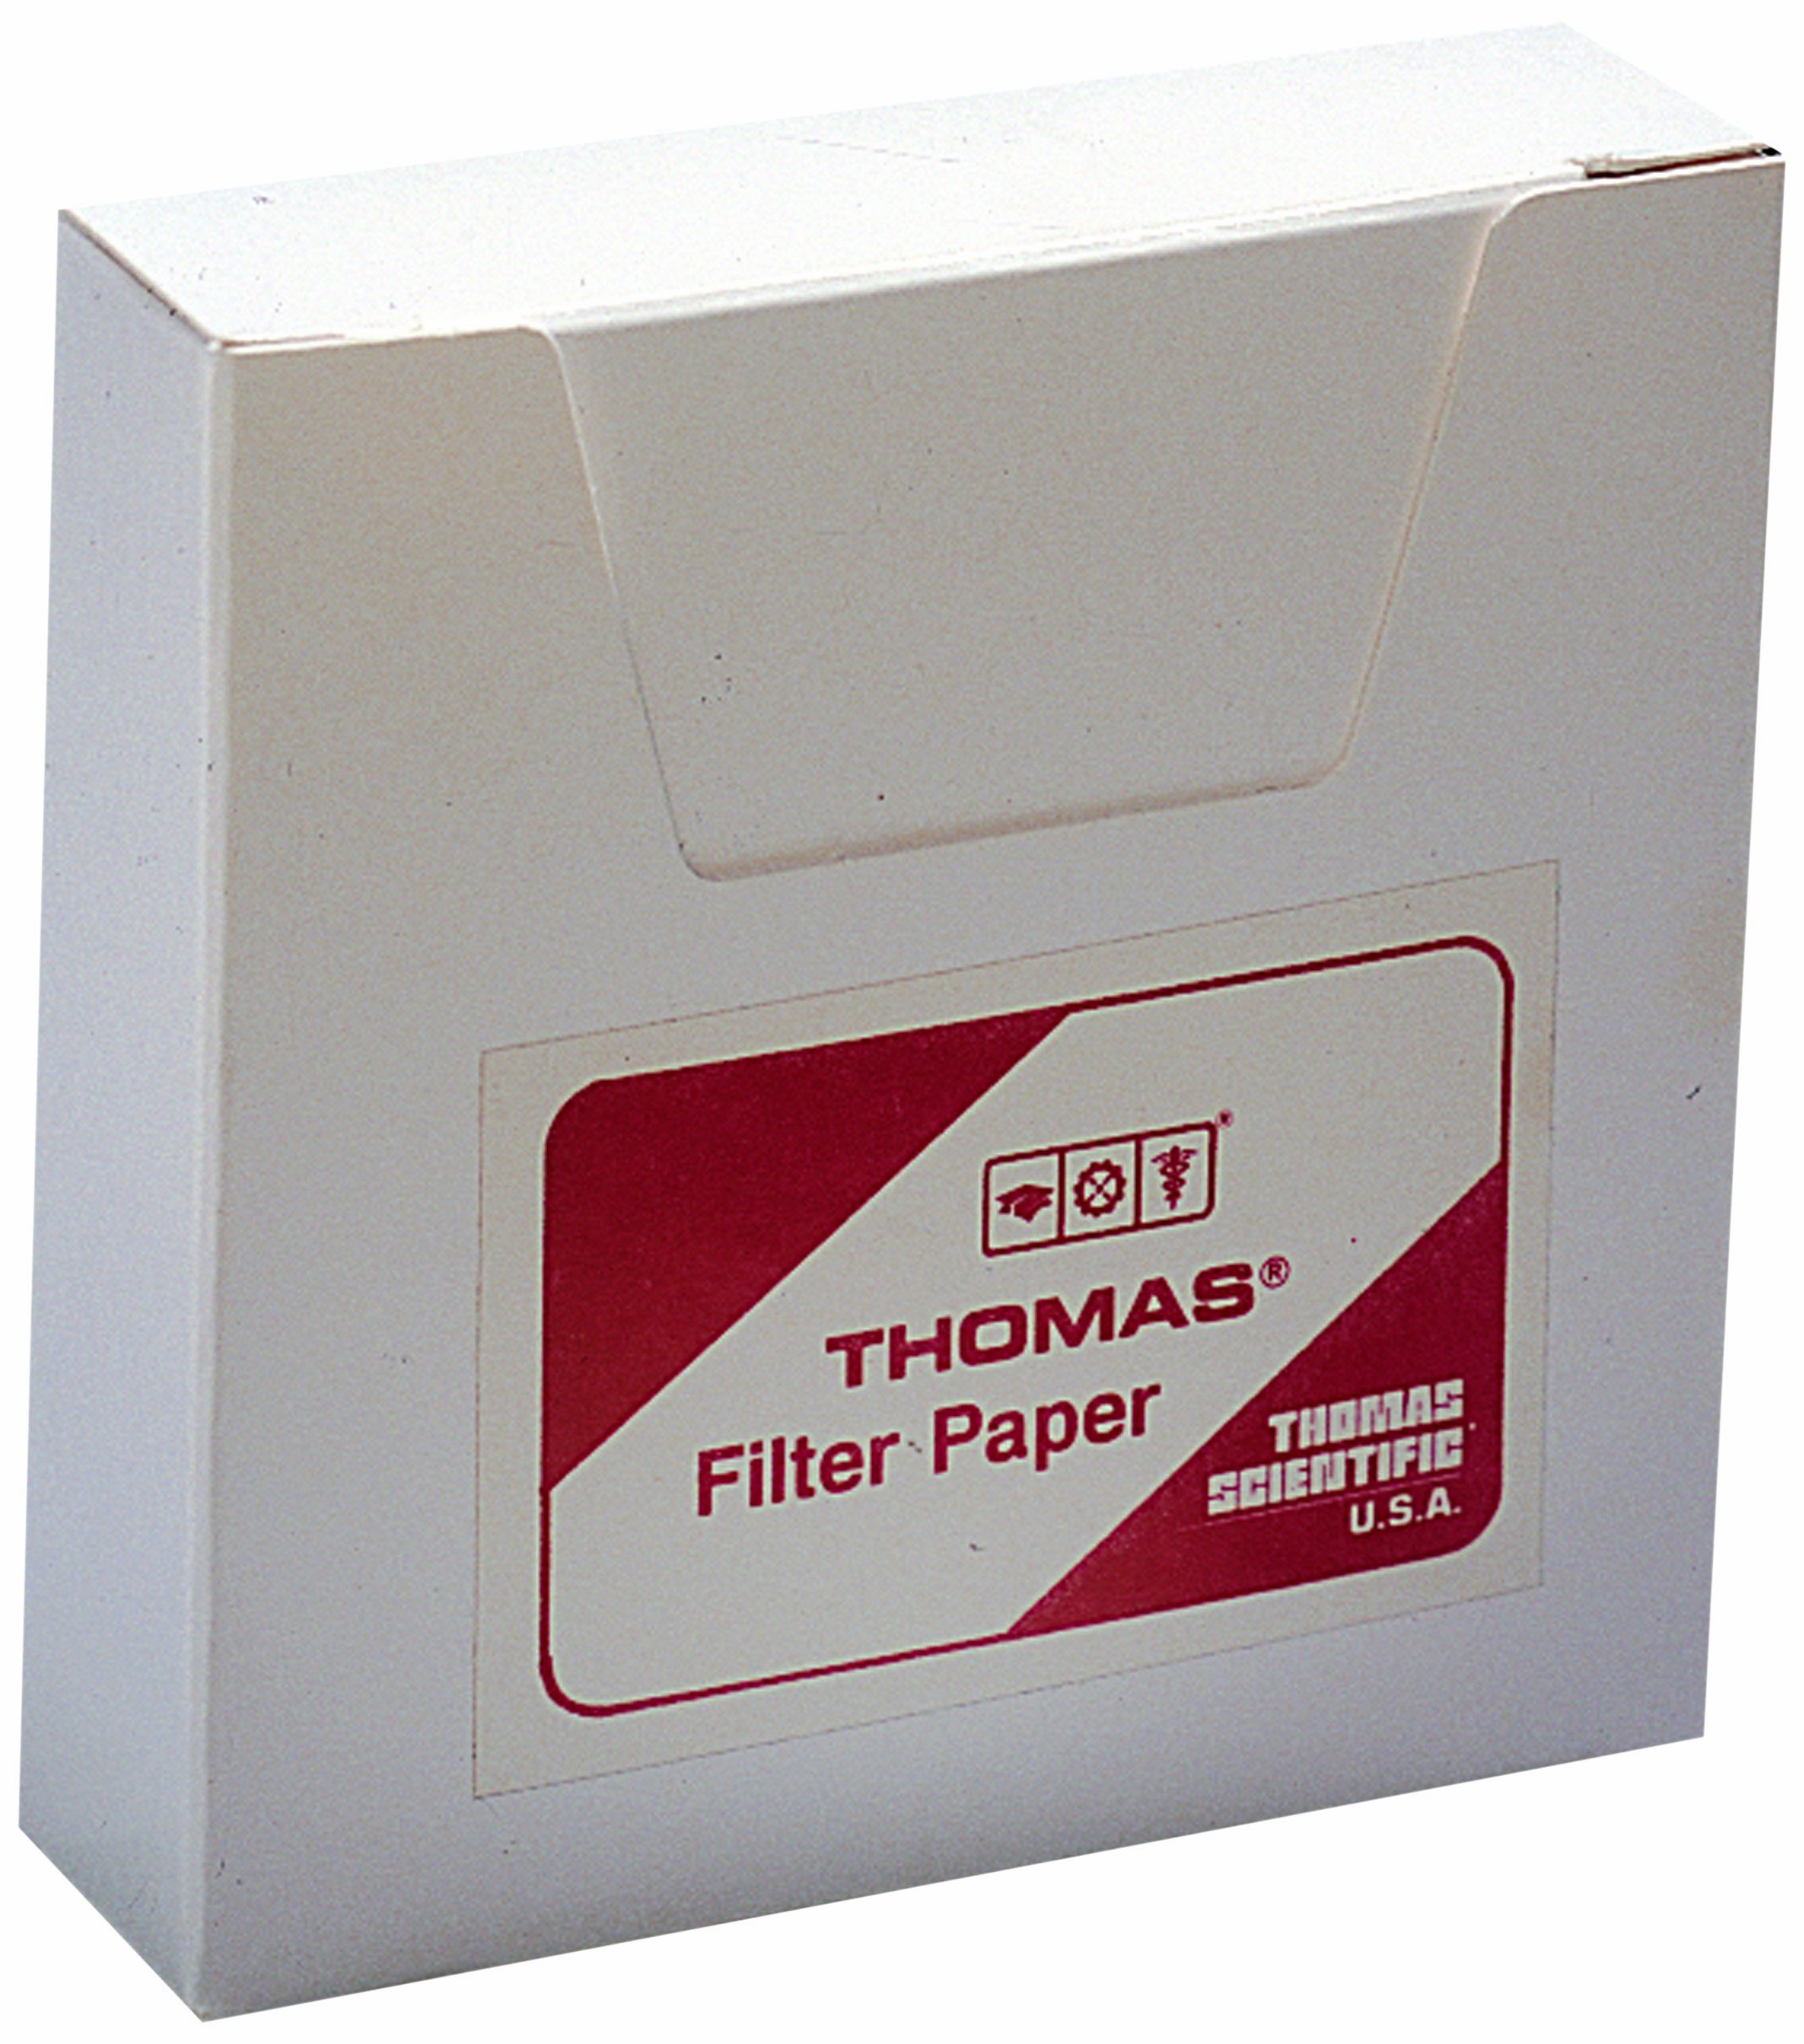 Thomas 6100-1500 Qualitative Filter Paper, 1.5 Micron, Grade, 15cm Diameter x 0.15mm Thick (Pack of 100)